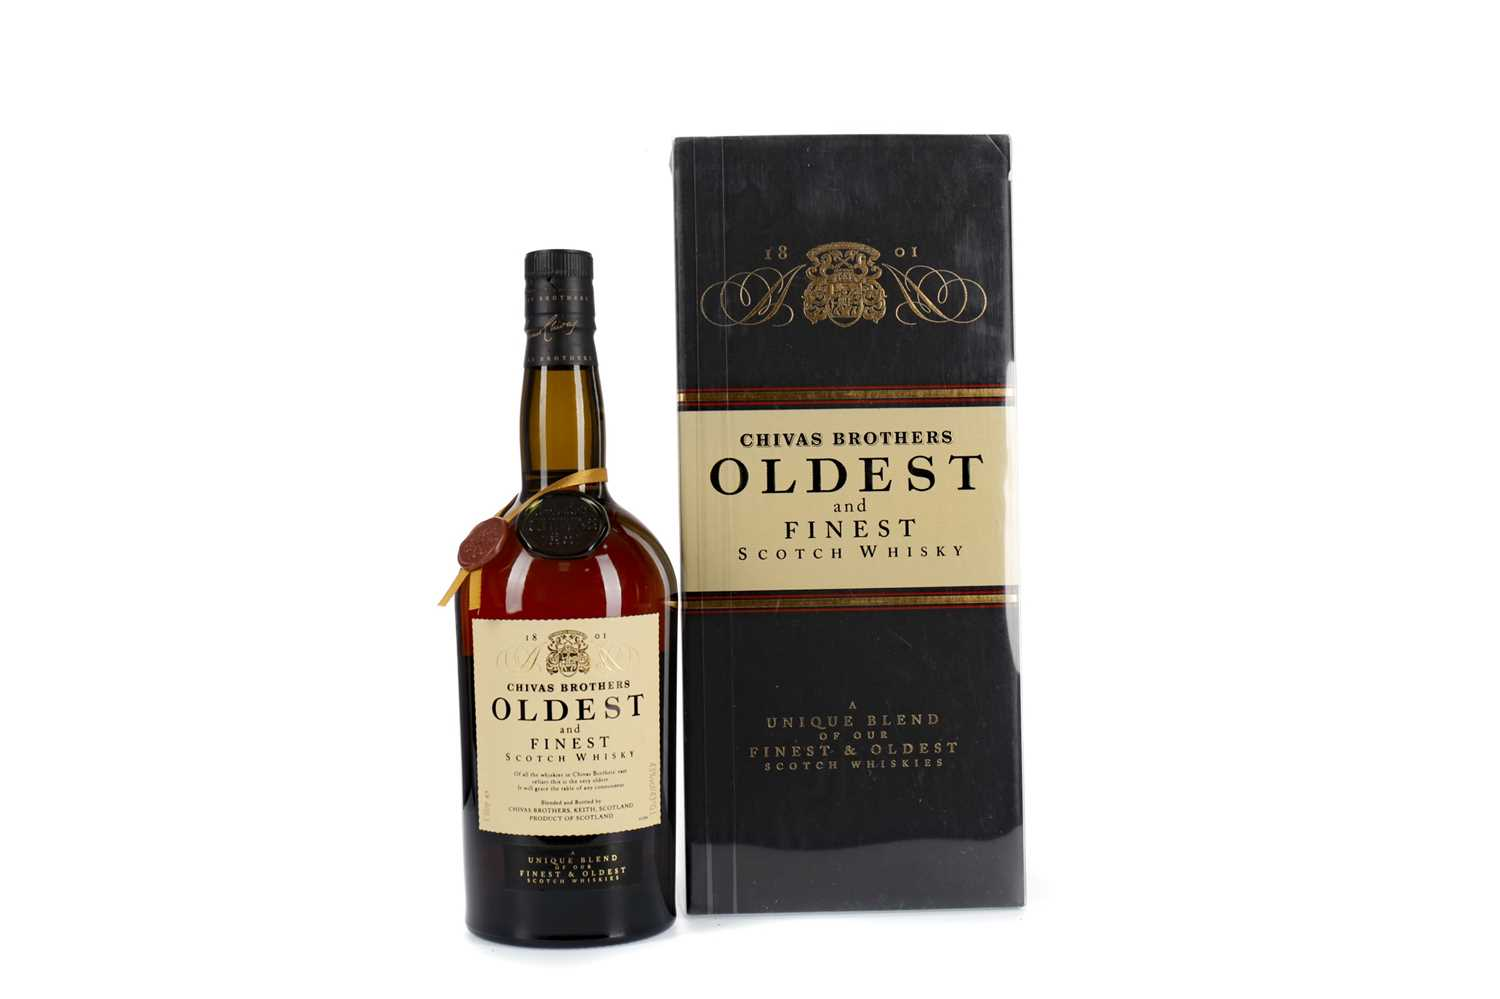 Lot 54 - CHIVAS BROTHERS OLDEST AND FINEST - ONE LITRE